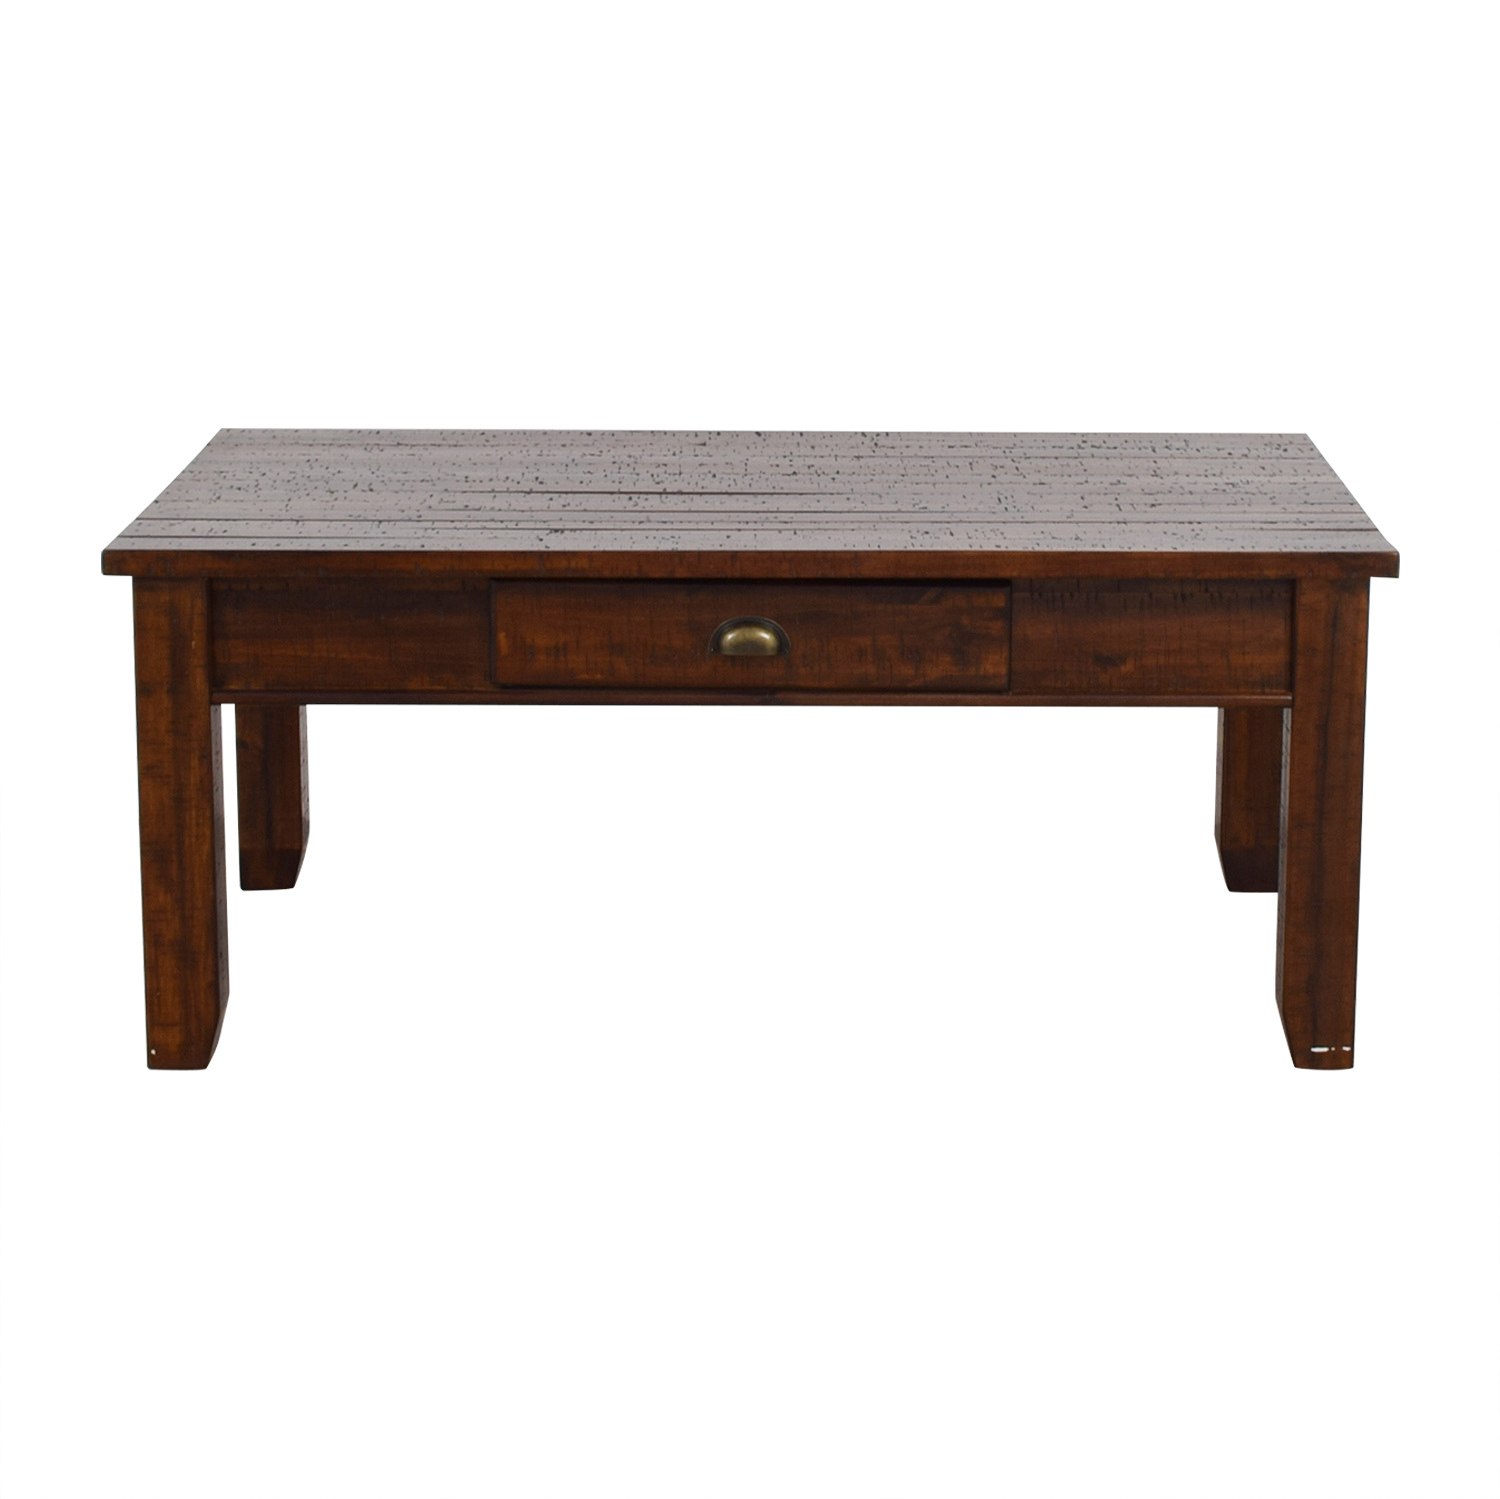 Raymour & Flanigan Raymour & Flanigan Urban Lodge Coffee Table Tables